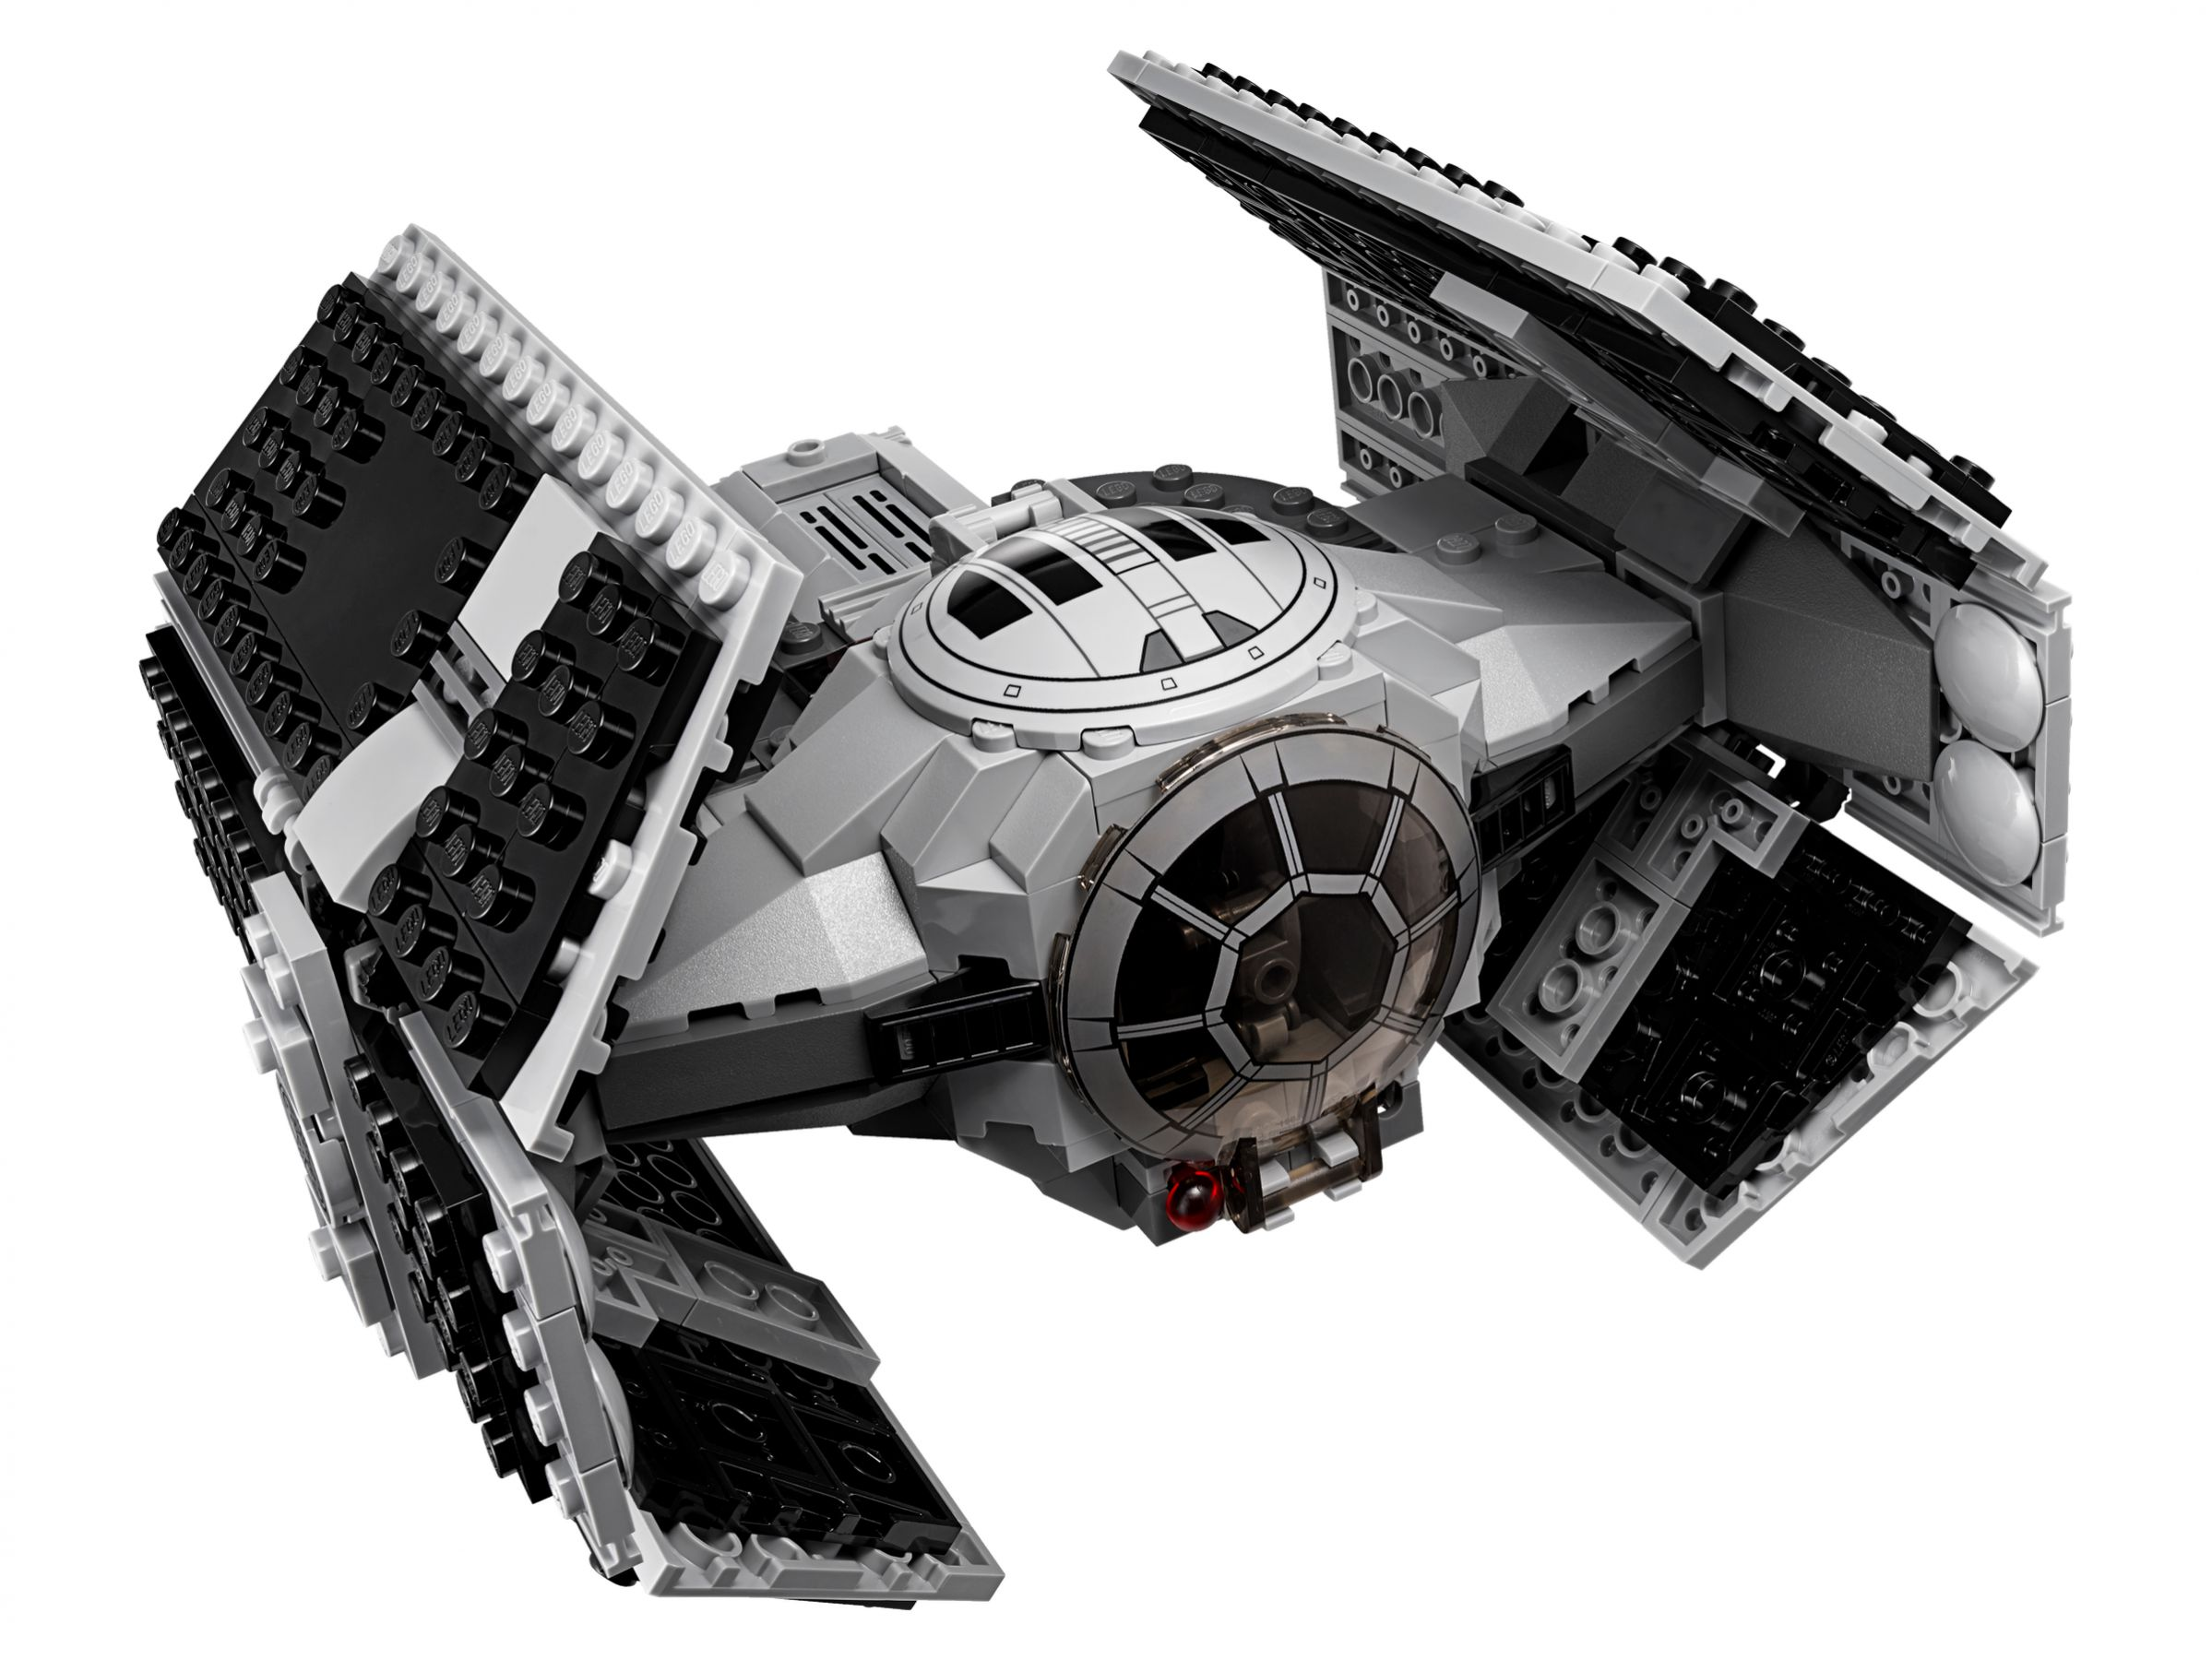 LEGO Star Wars 75150 Vader's TIE Advanced vs. A-Wing Starfighter LEGO_75150_alt3.jpg